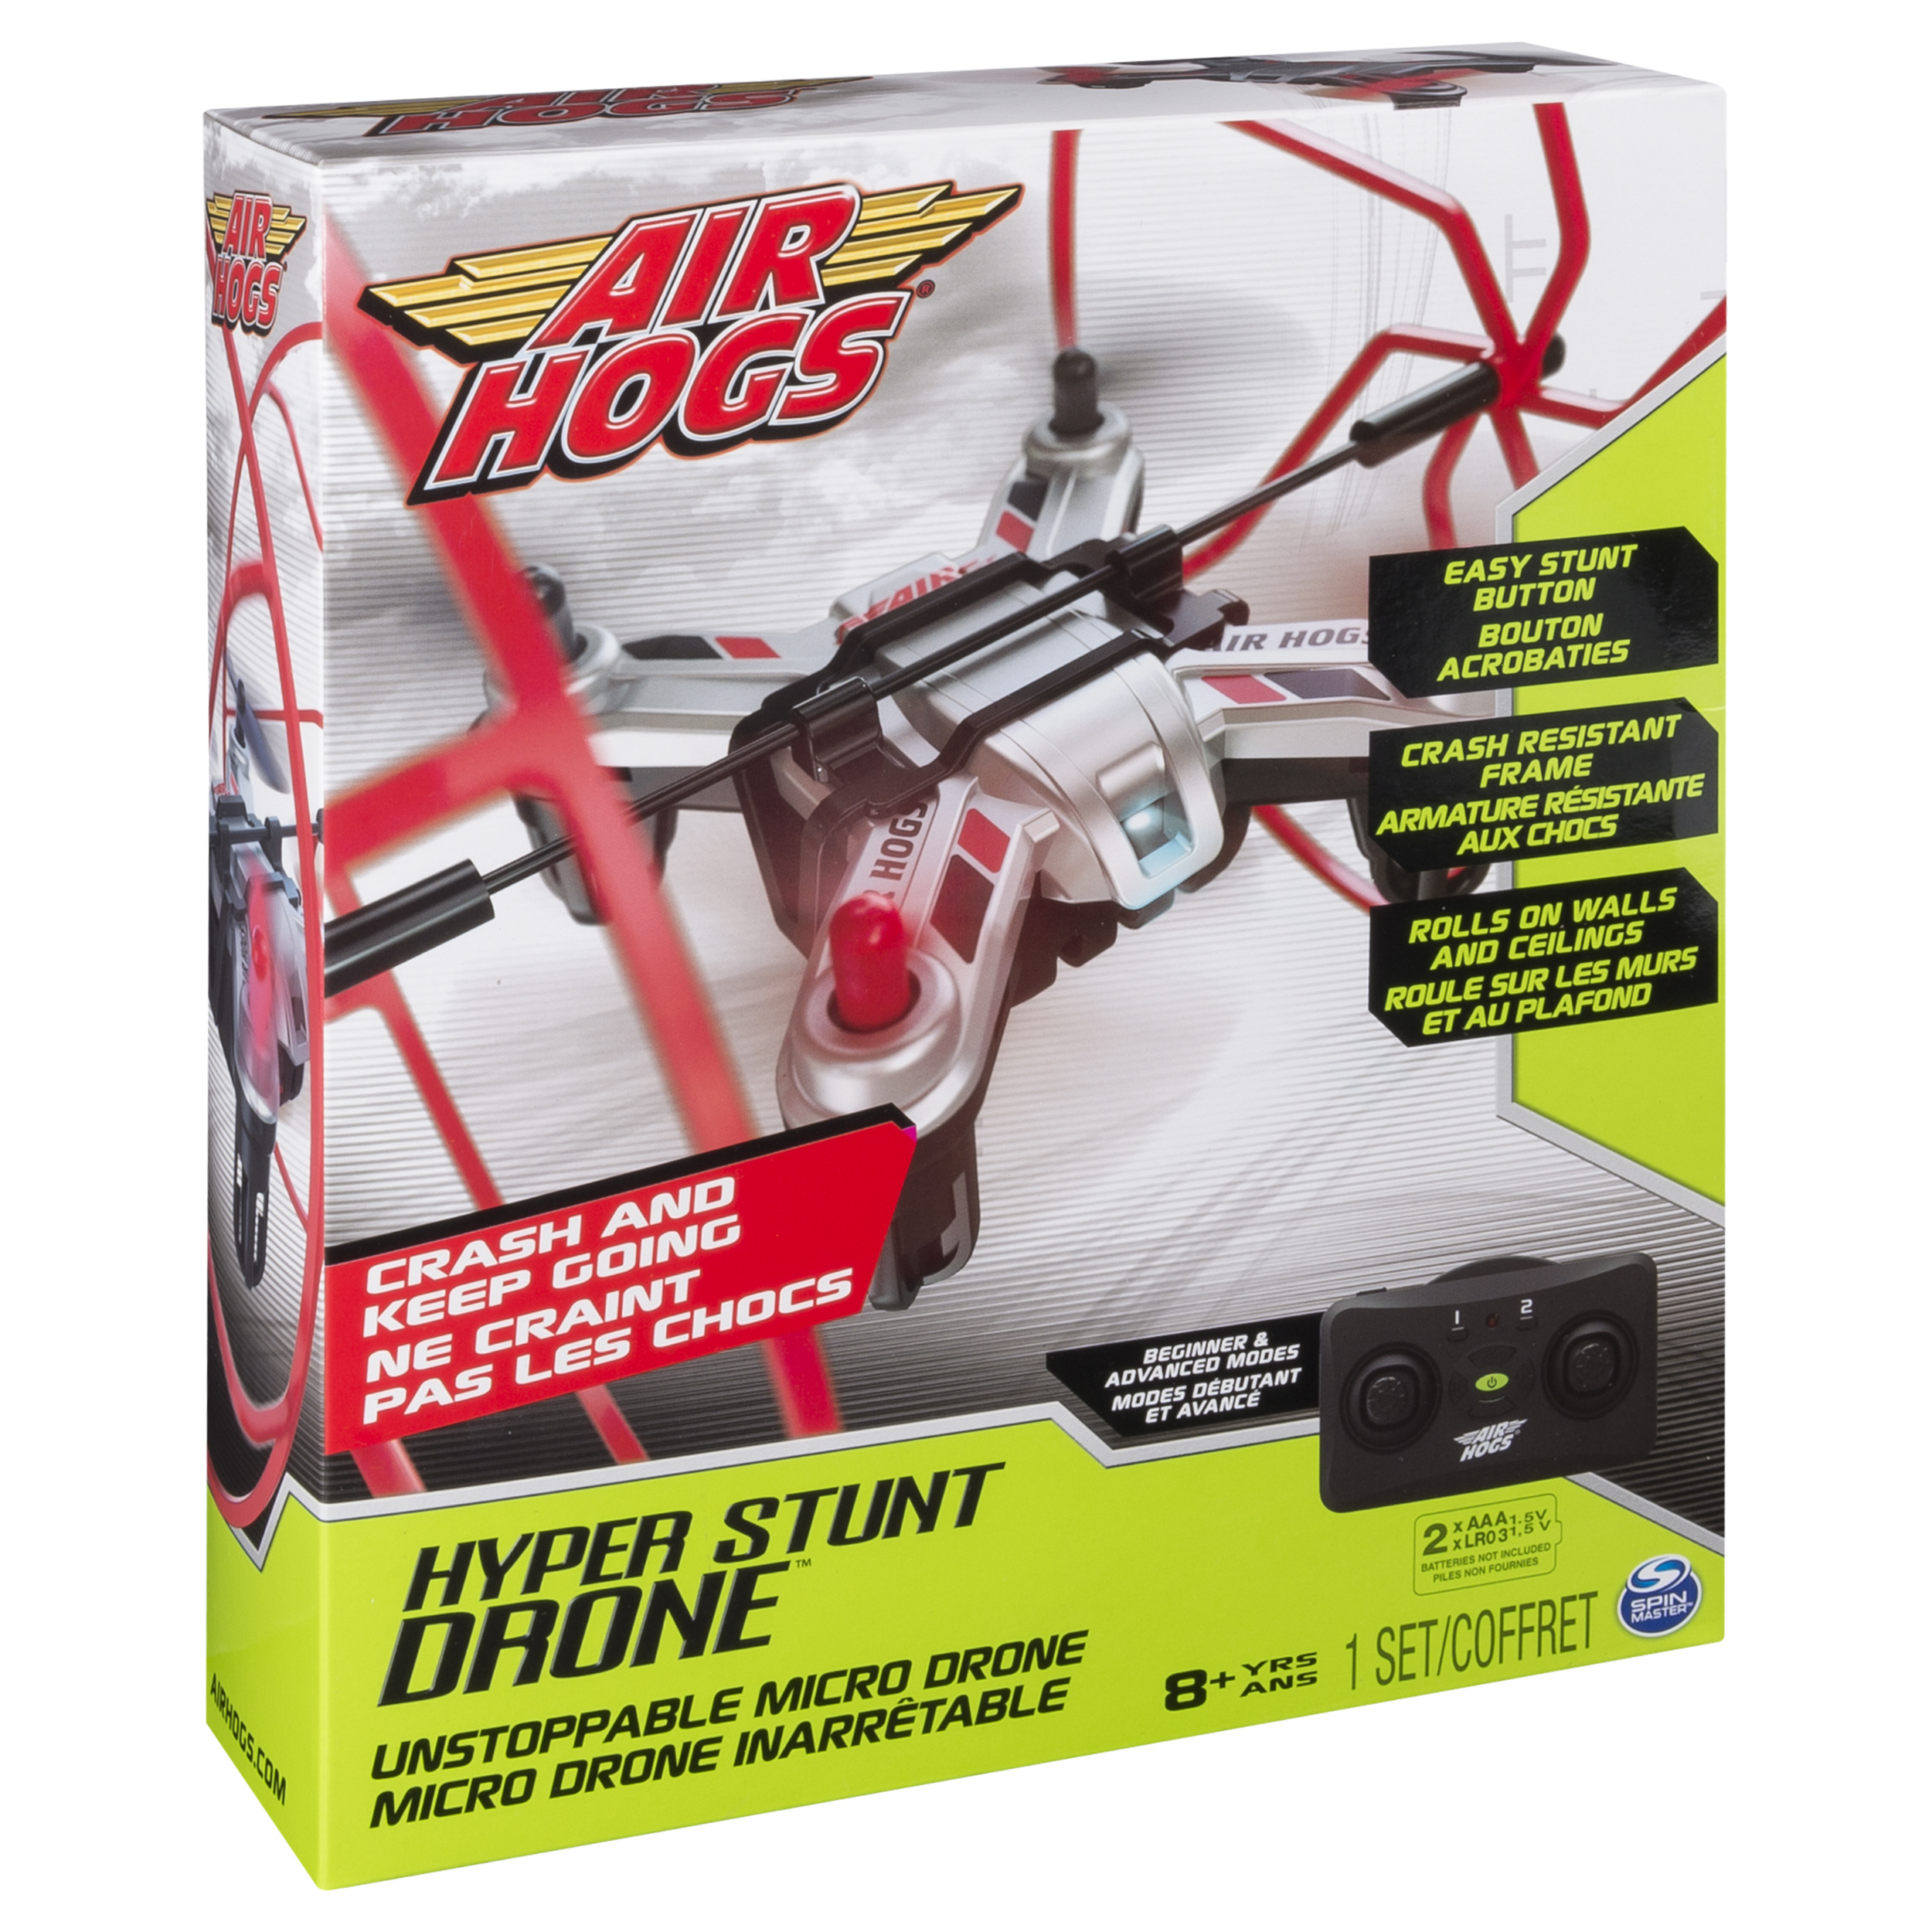 Air Hogs Hyper Stunt Drone Unstoppable Micro RC Drone Red by Spin Master Ltd